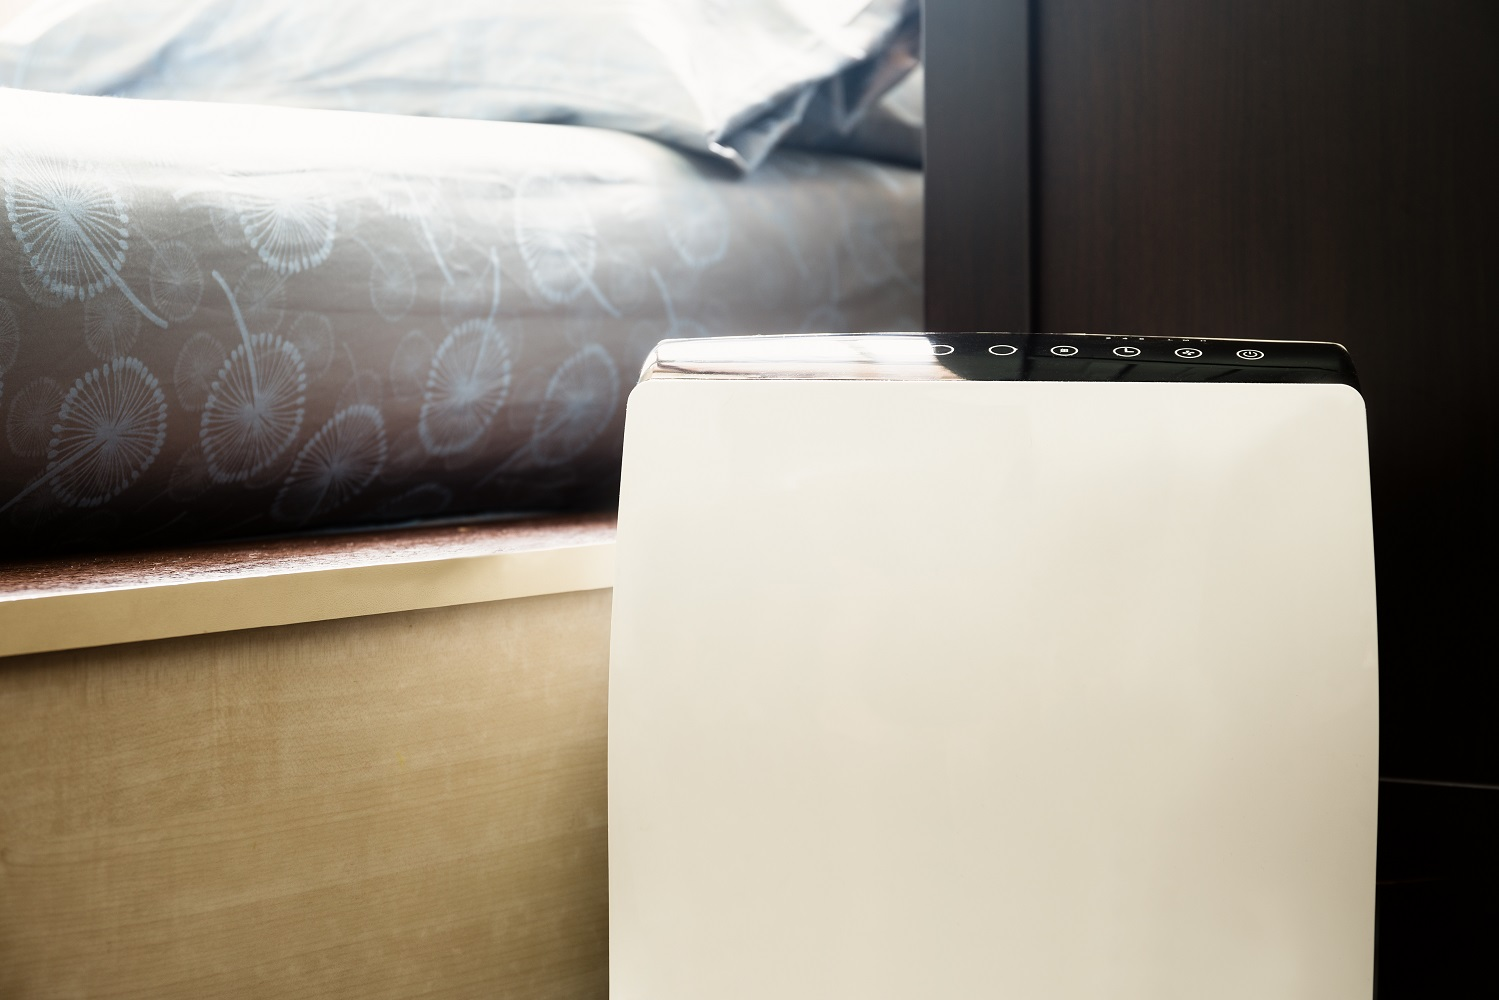 Air purifier in the bed room cleaner removing fine dust in house